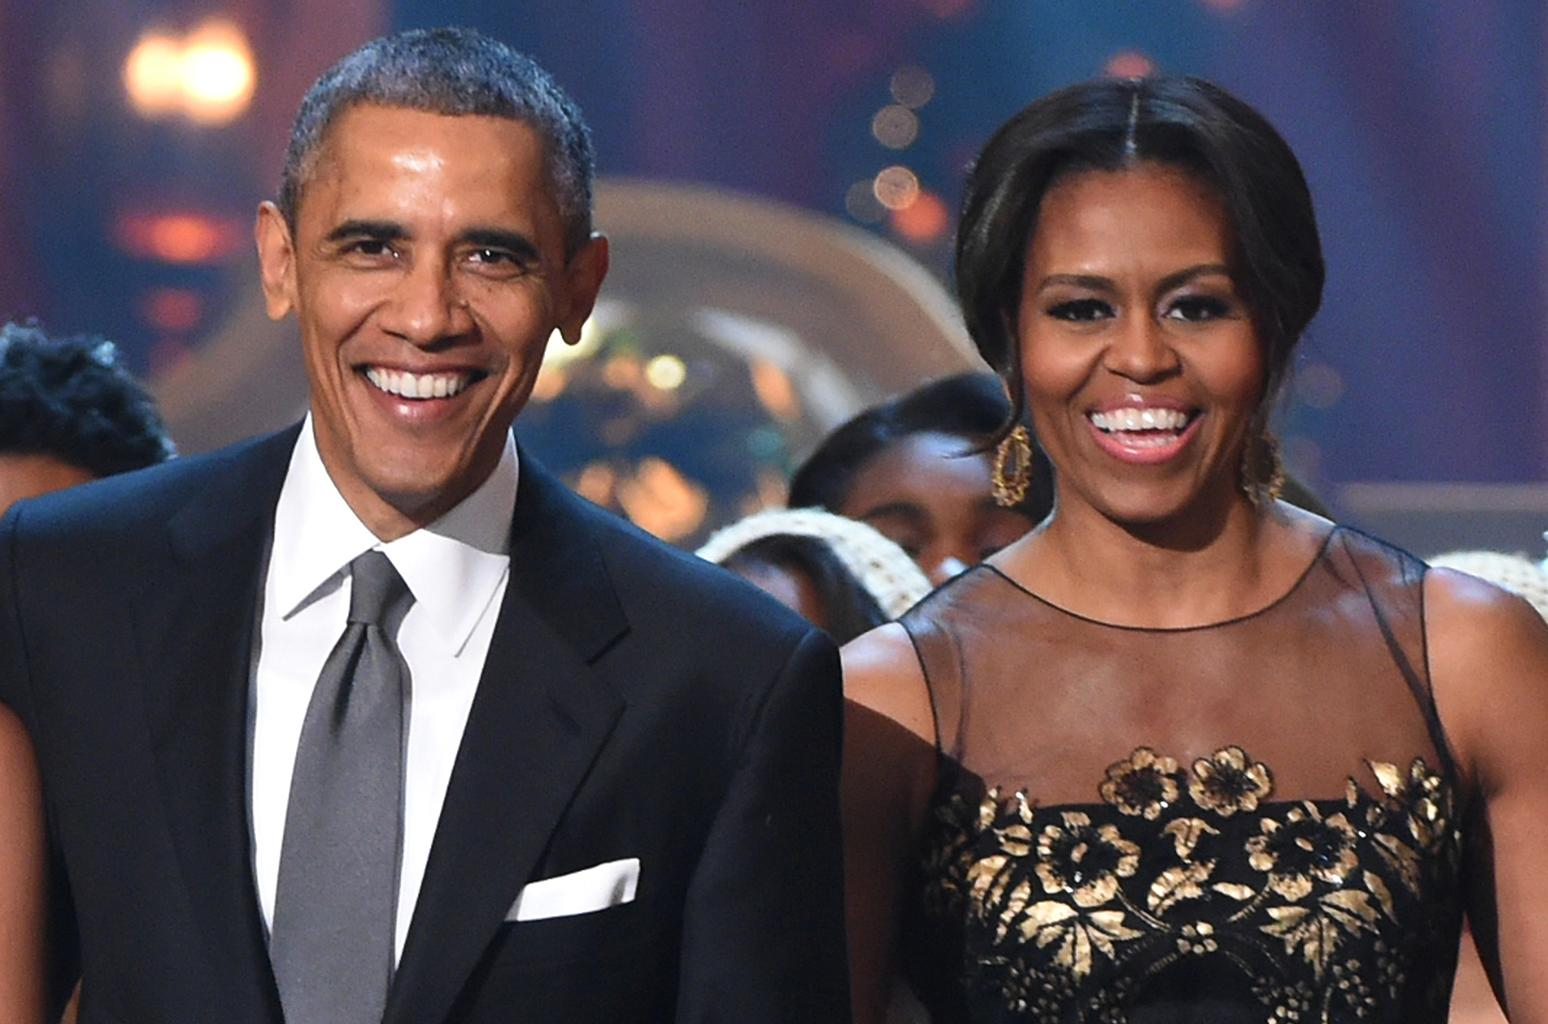 Barack And Michelle Obama Celebrate 27 Years Of Marriage - Check Out Their Romantic Posts!